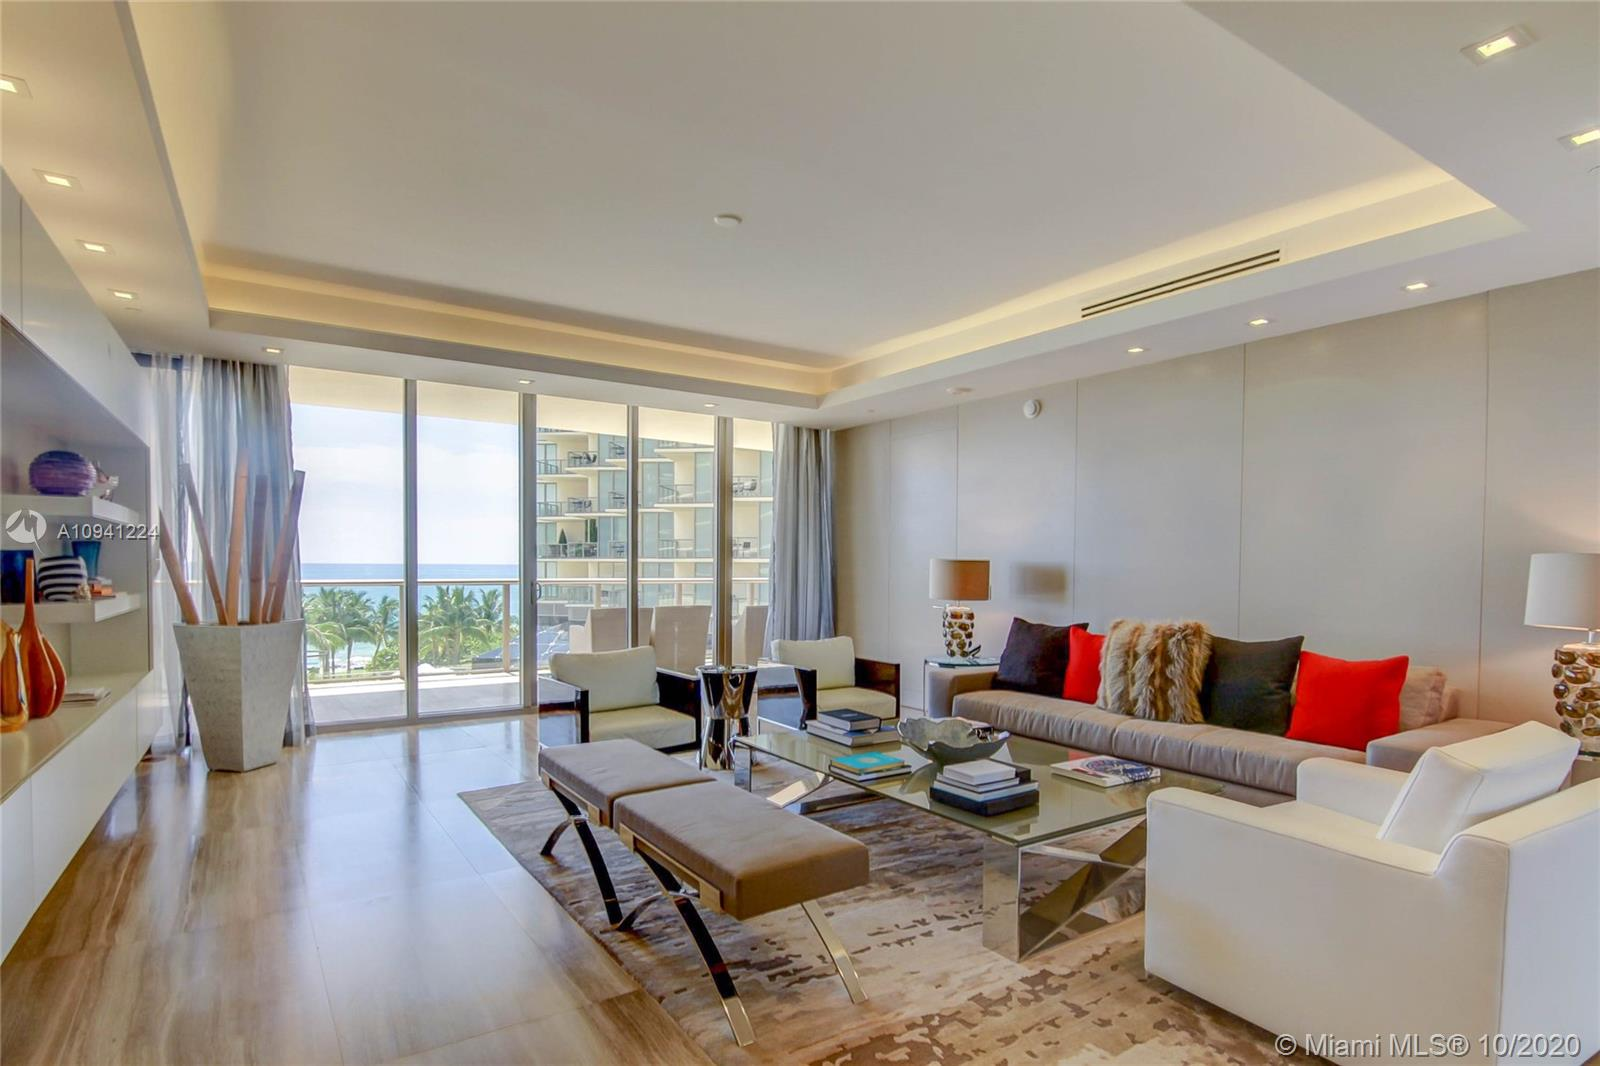 9705 Collins Ave, Unit #503N Luxury Real Estate